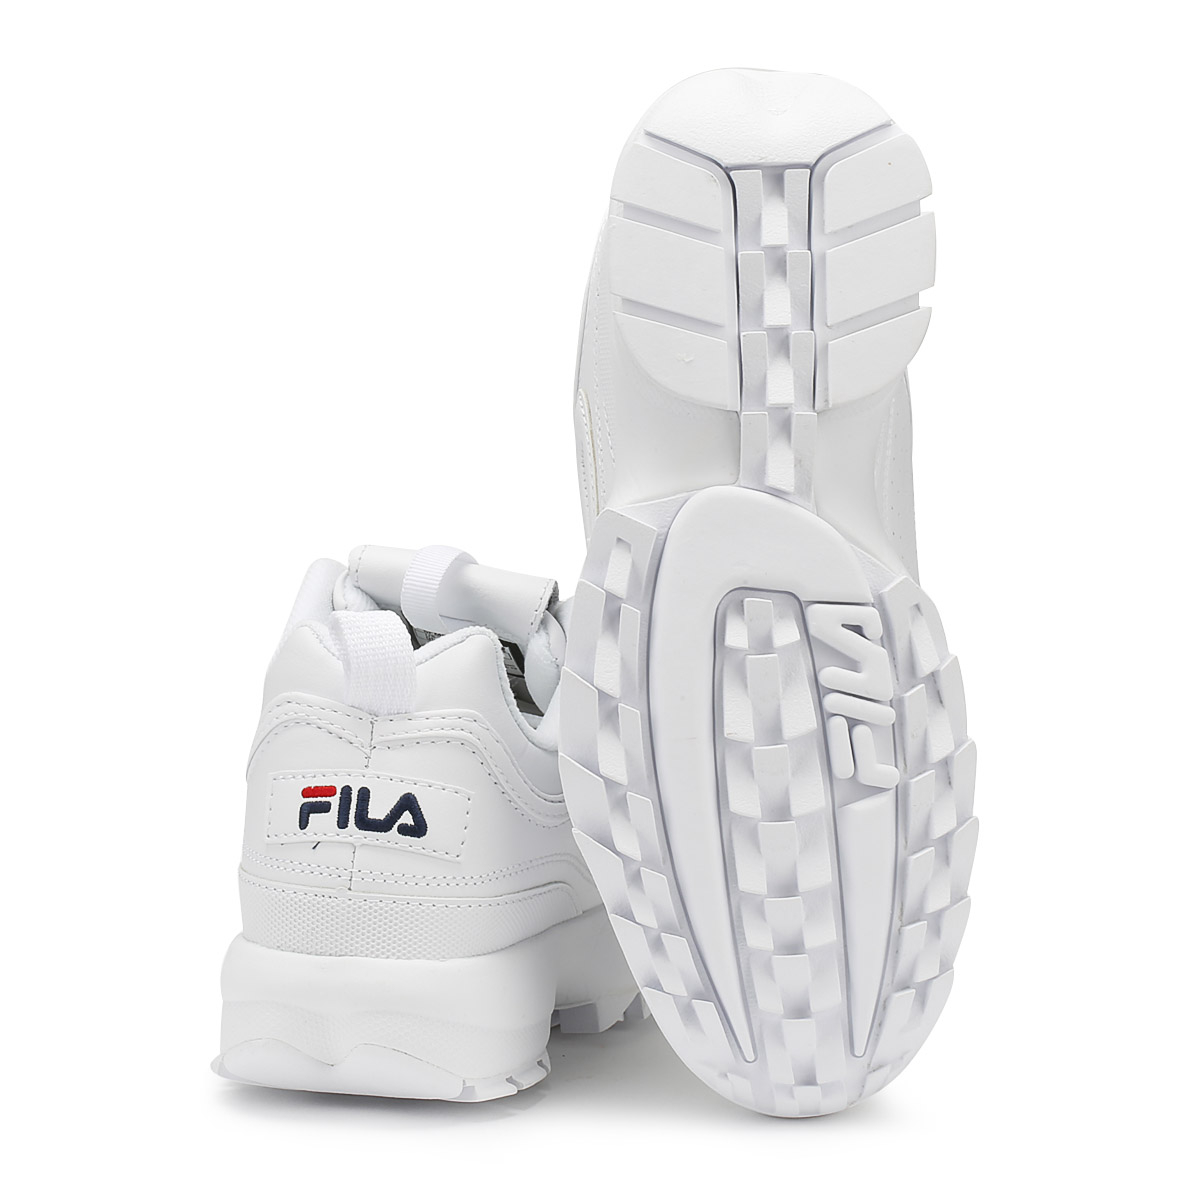 Fila Womens Trainers White Disruptor II Premium Sport Casual Lace Up Shoes 5127c143499